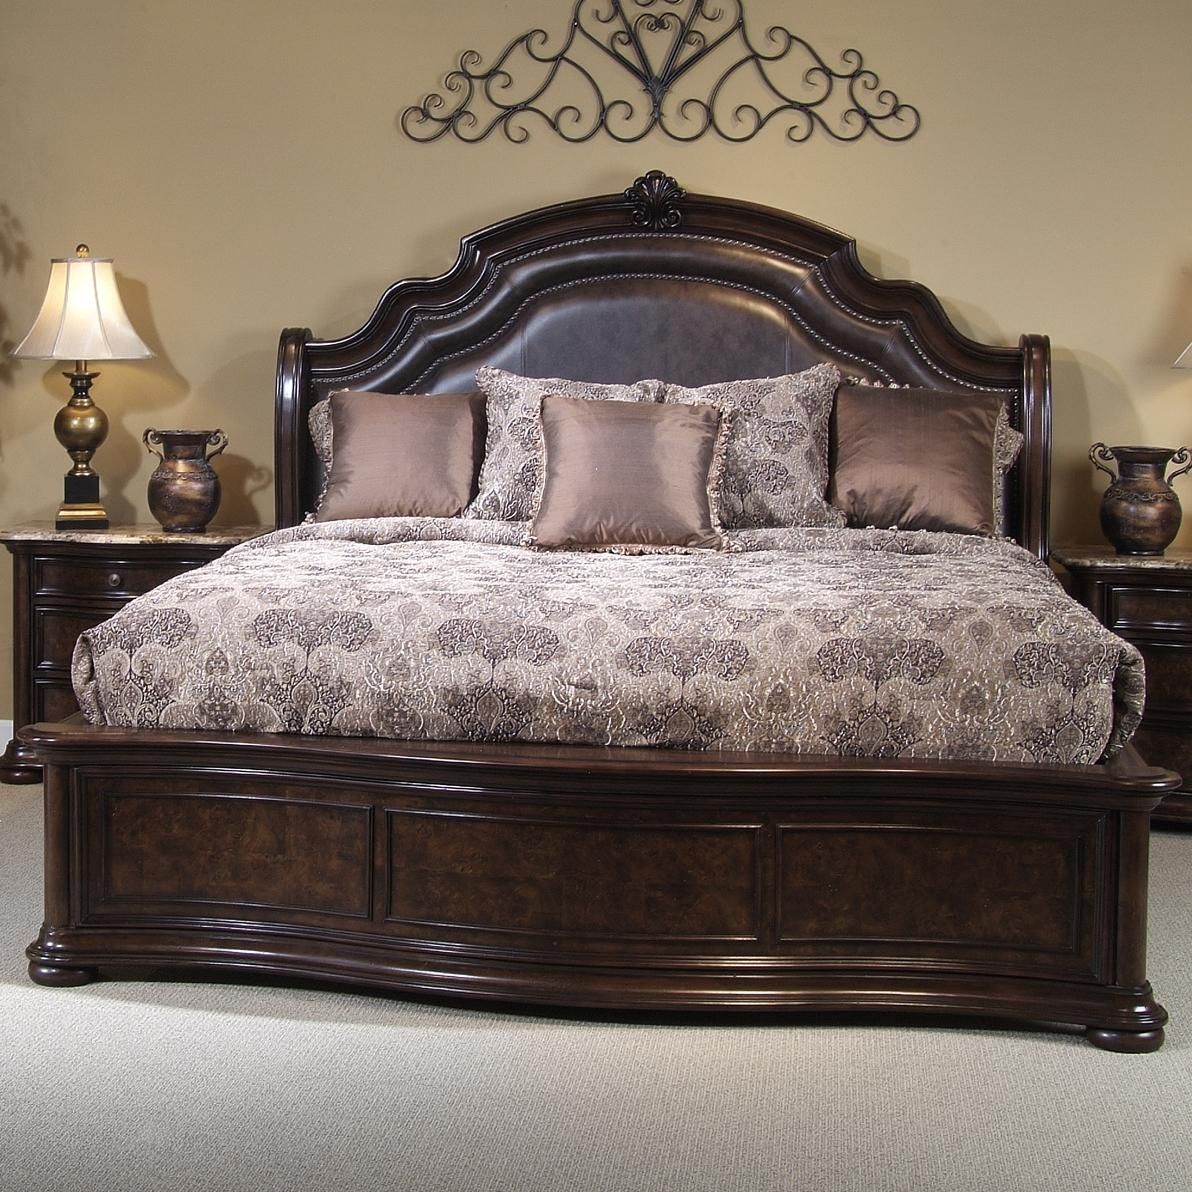 King Size Bed Size Beautiful King Size Bed Frame Using Brown Leather